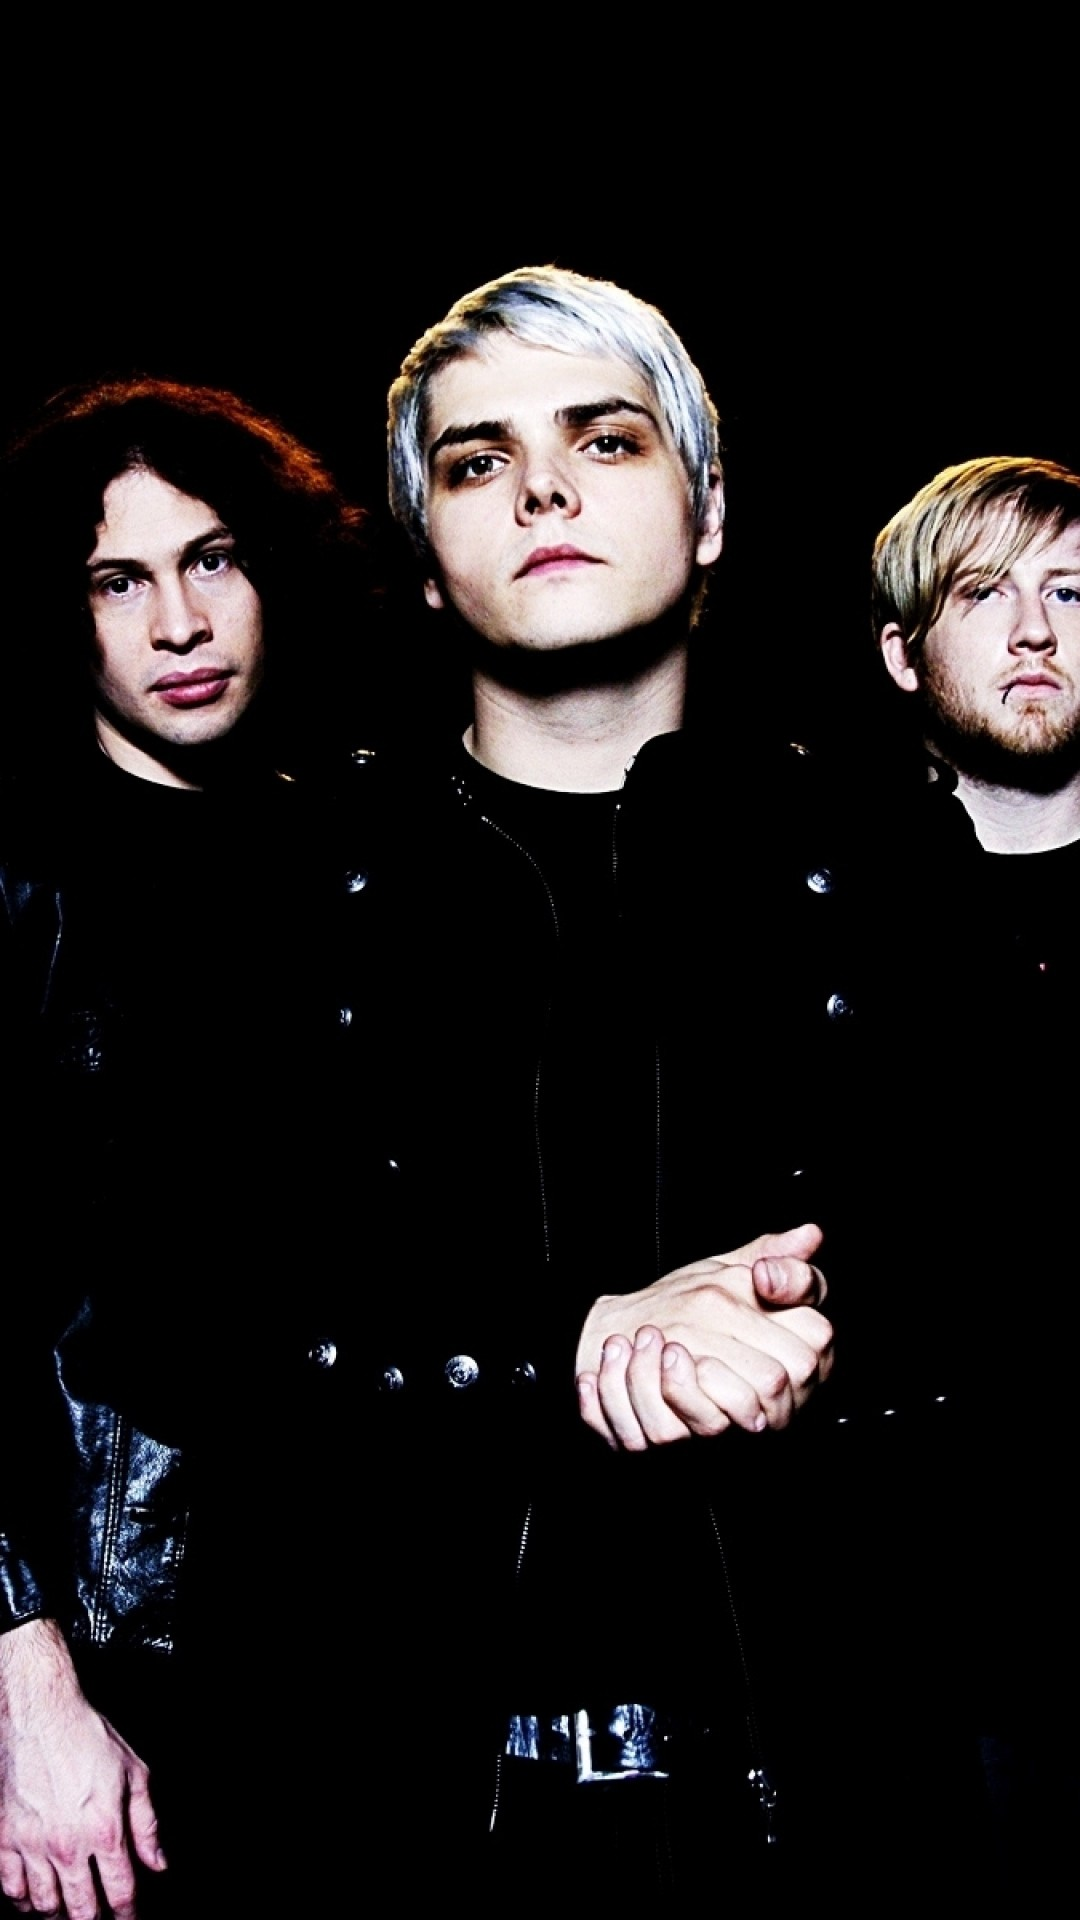 Wallpaper my chemical romance, band, members, look, background